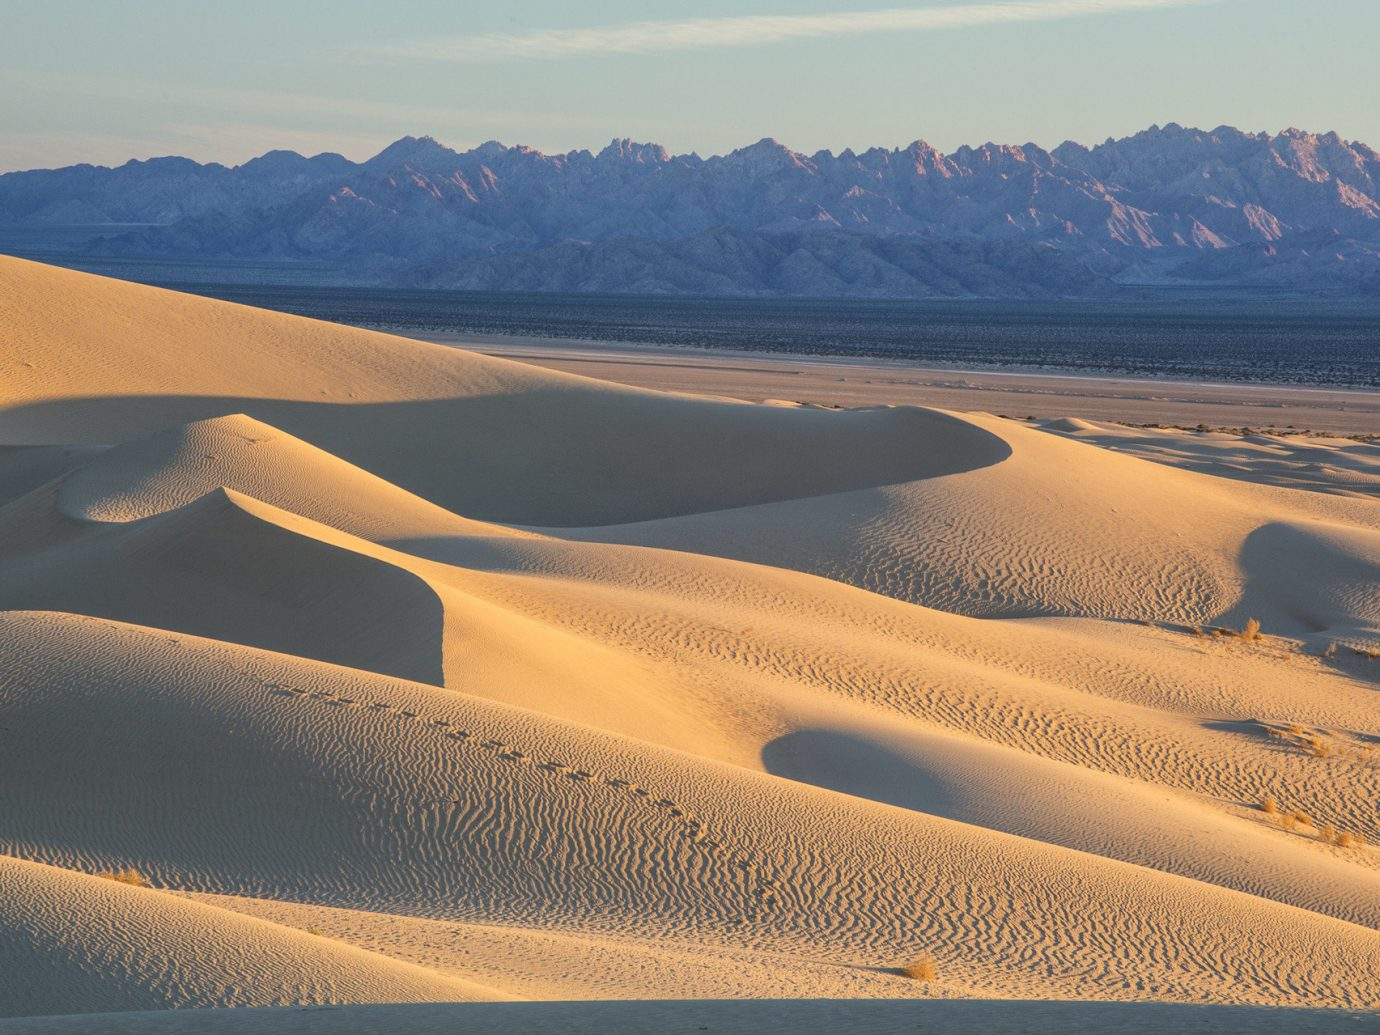 Sand dunes at Mojave National Preserve